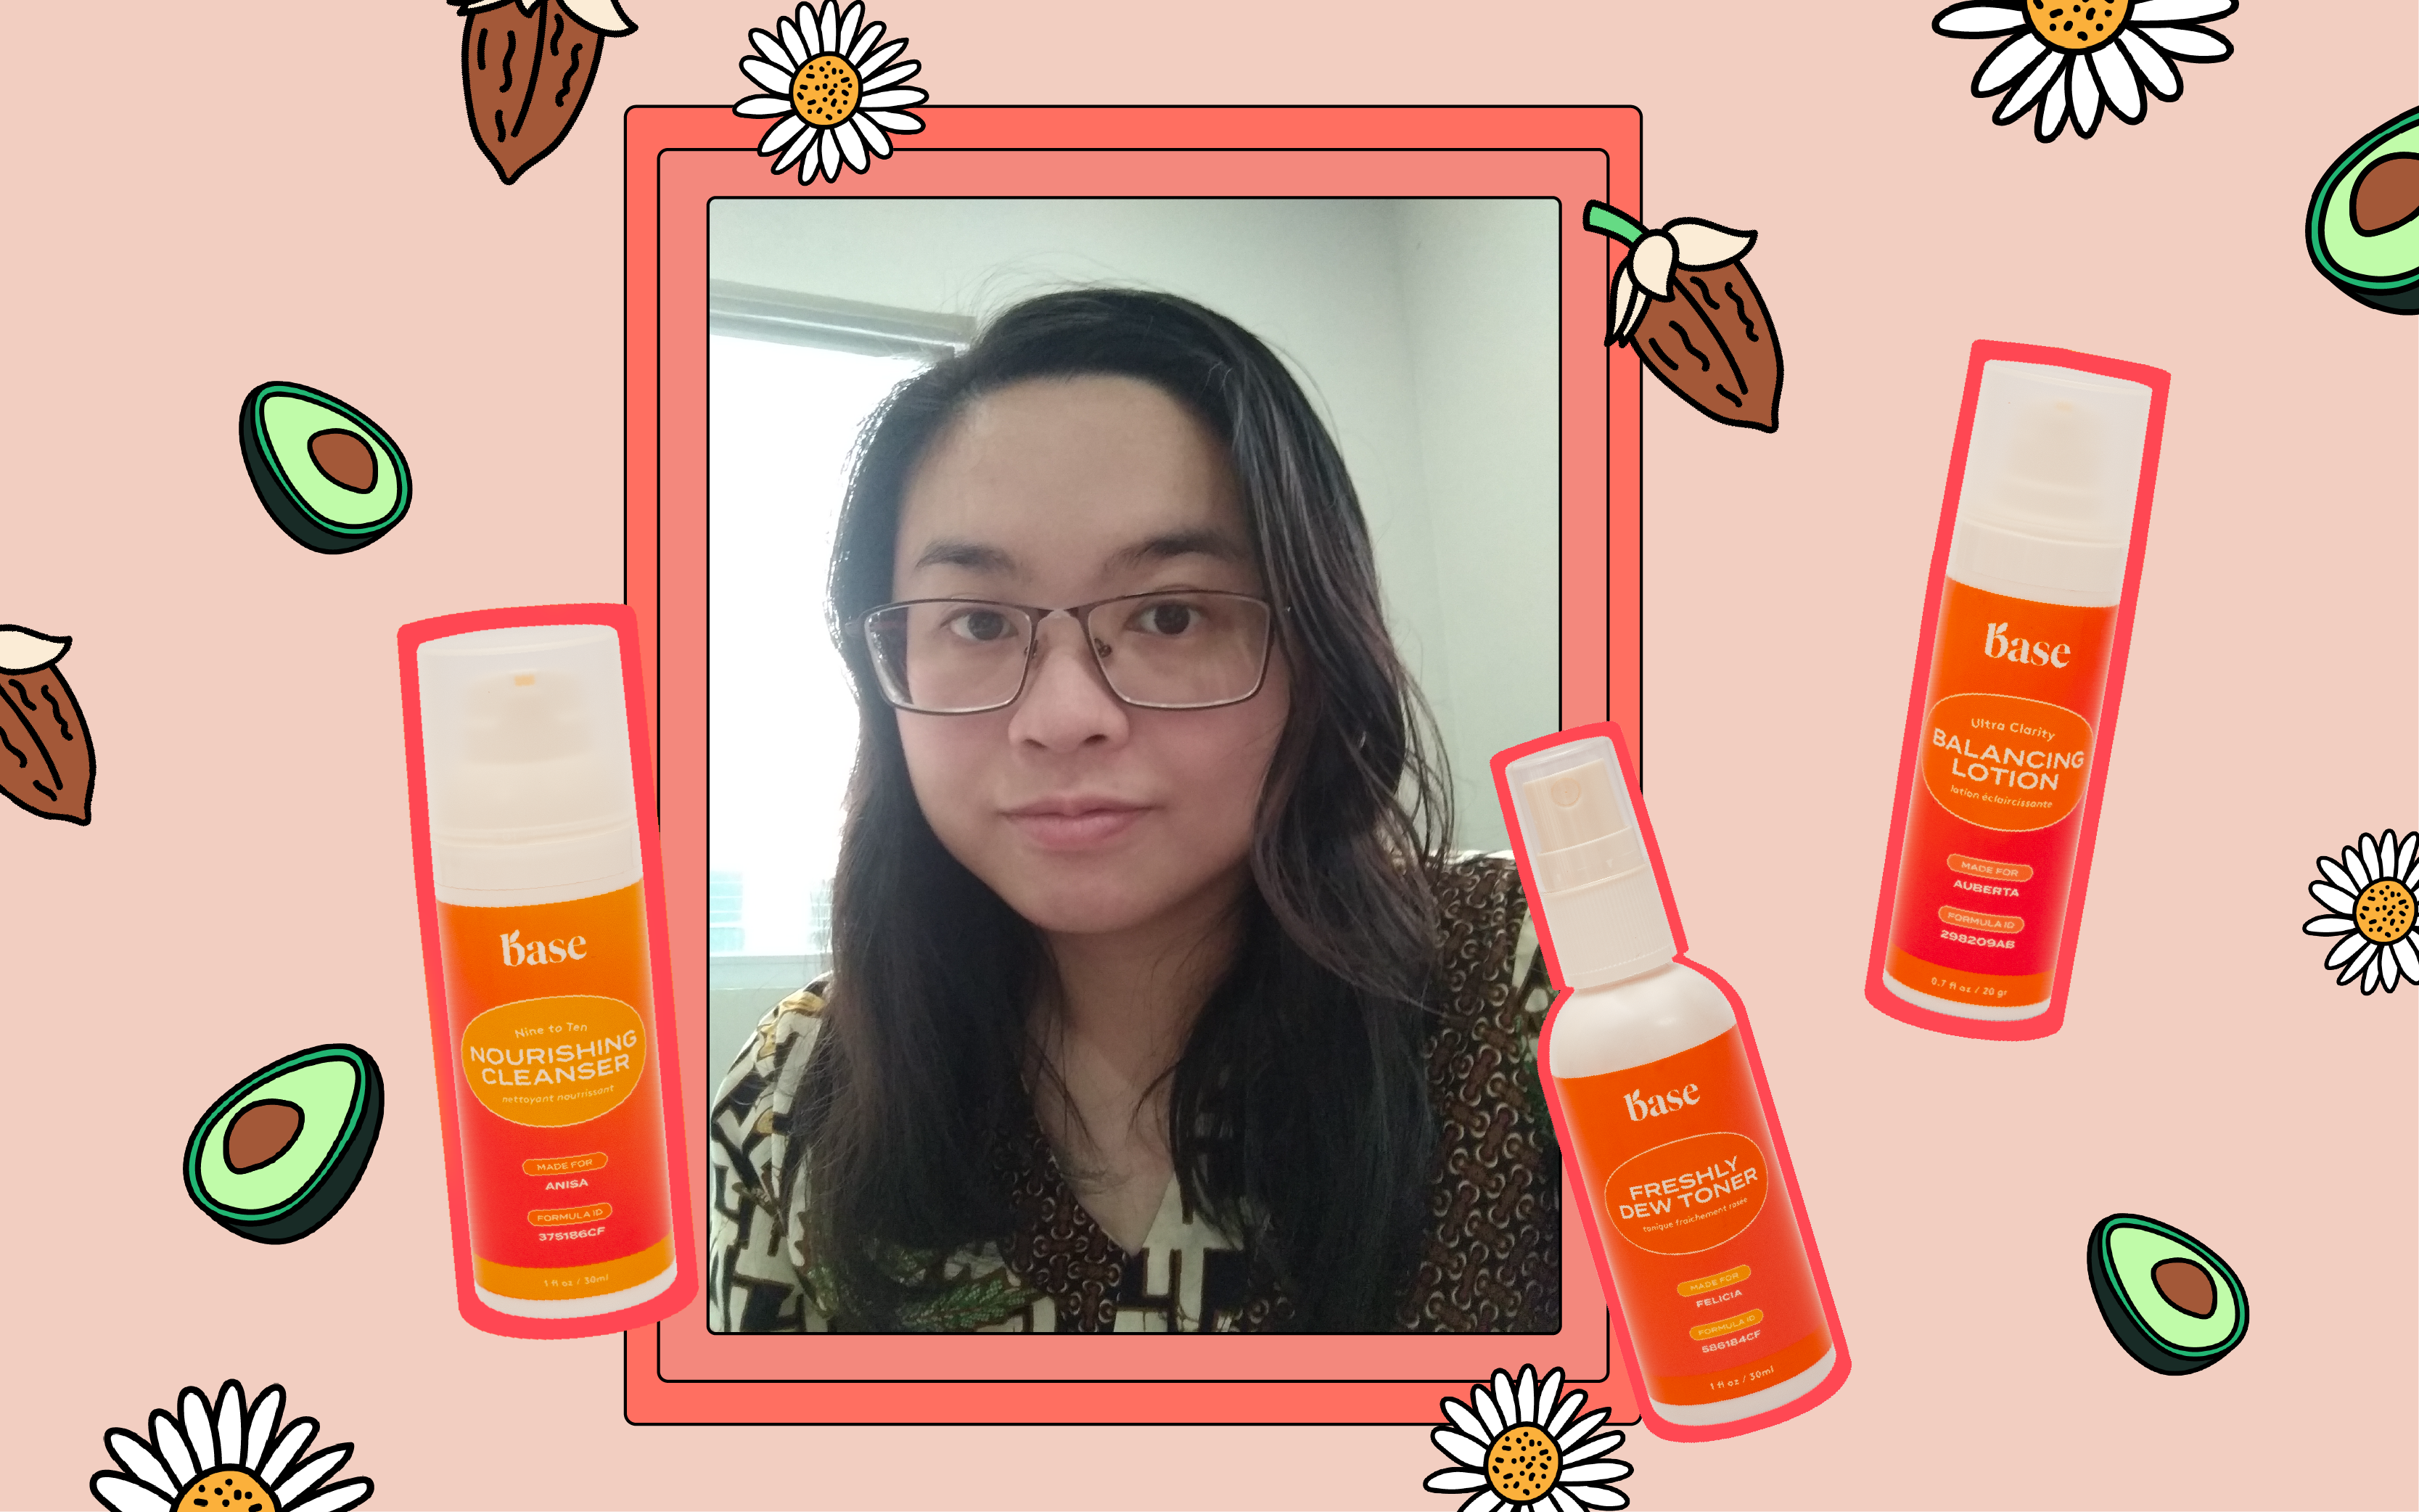 Yessica's Skin Journey: A Skincare Routine Based on my Skin Concerns